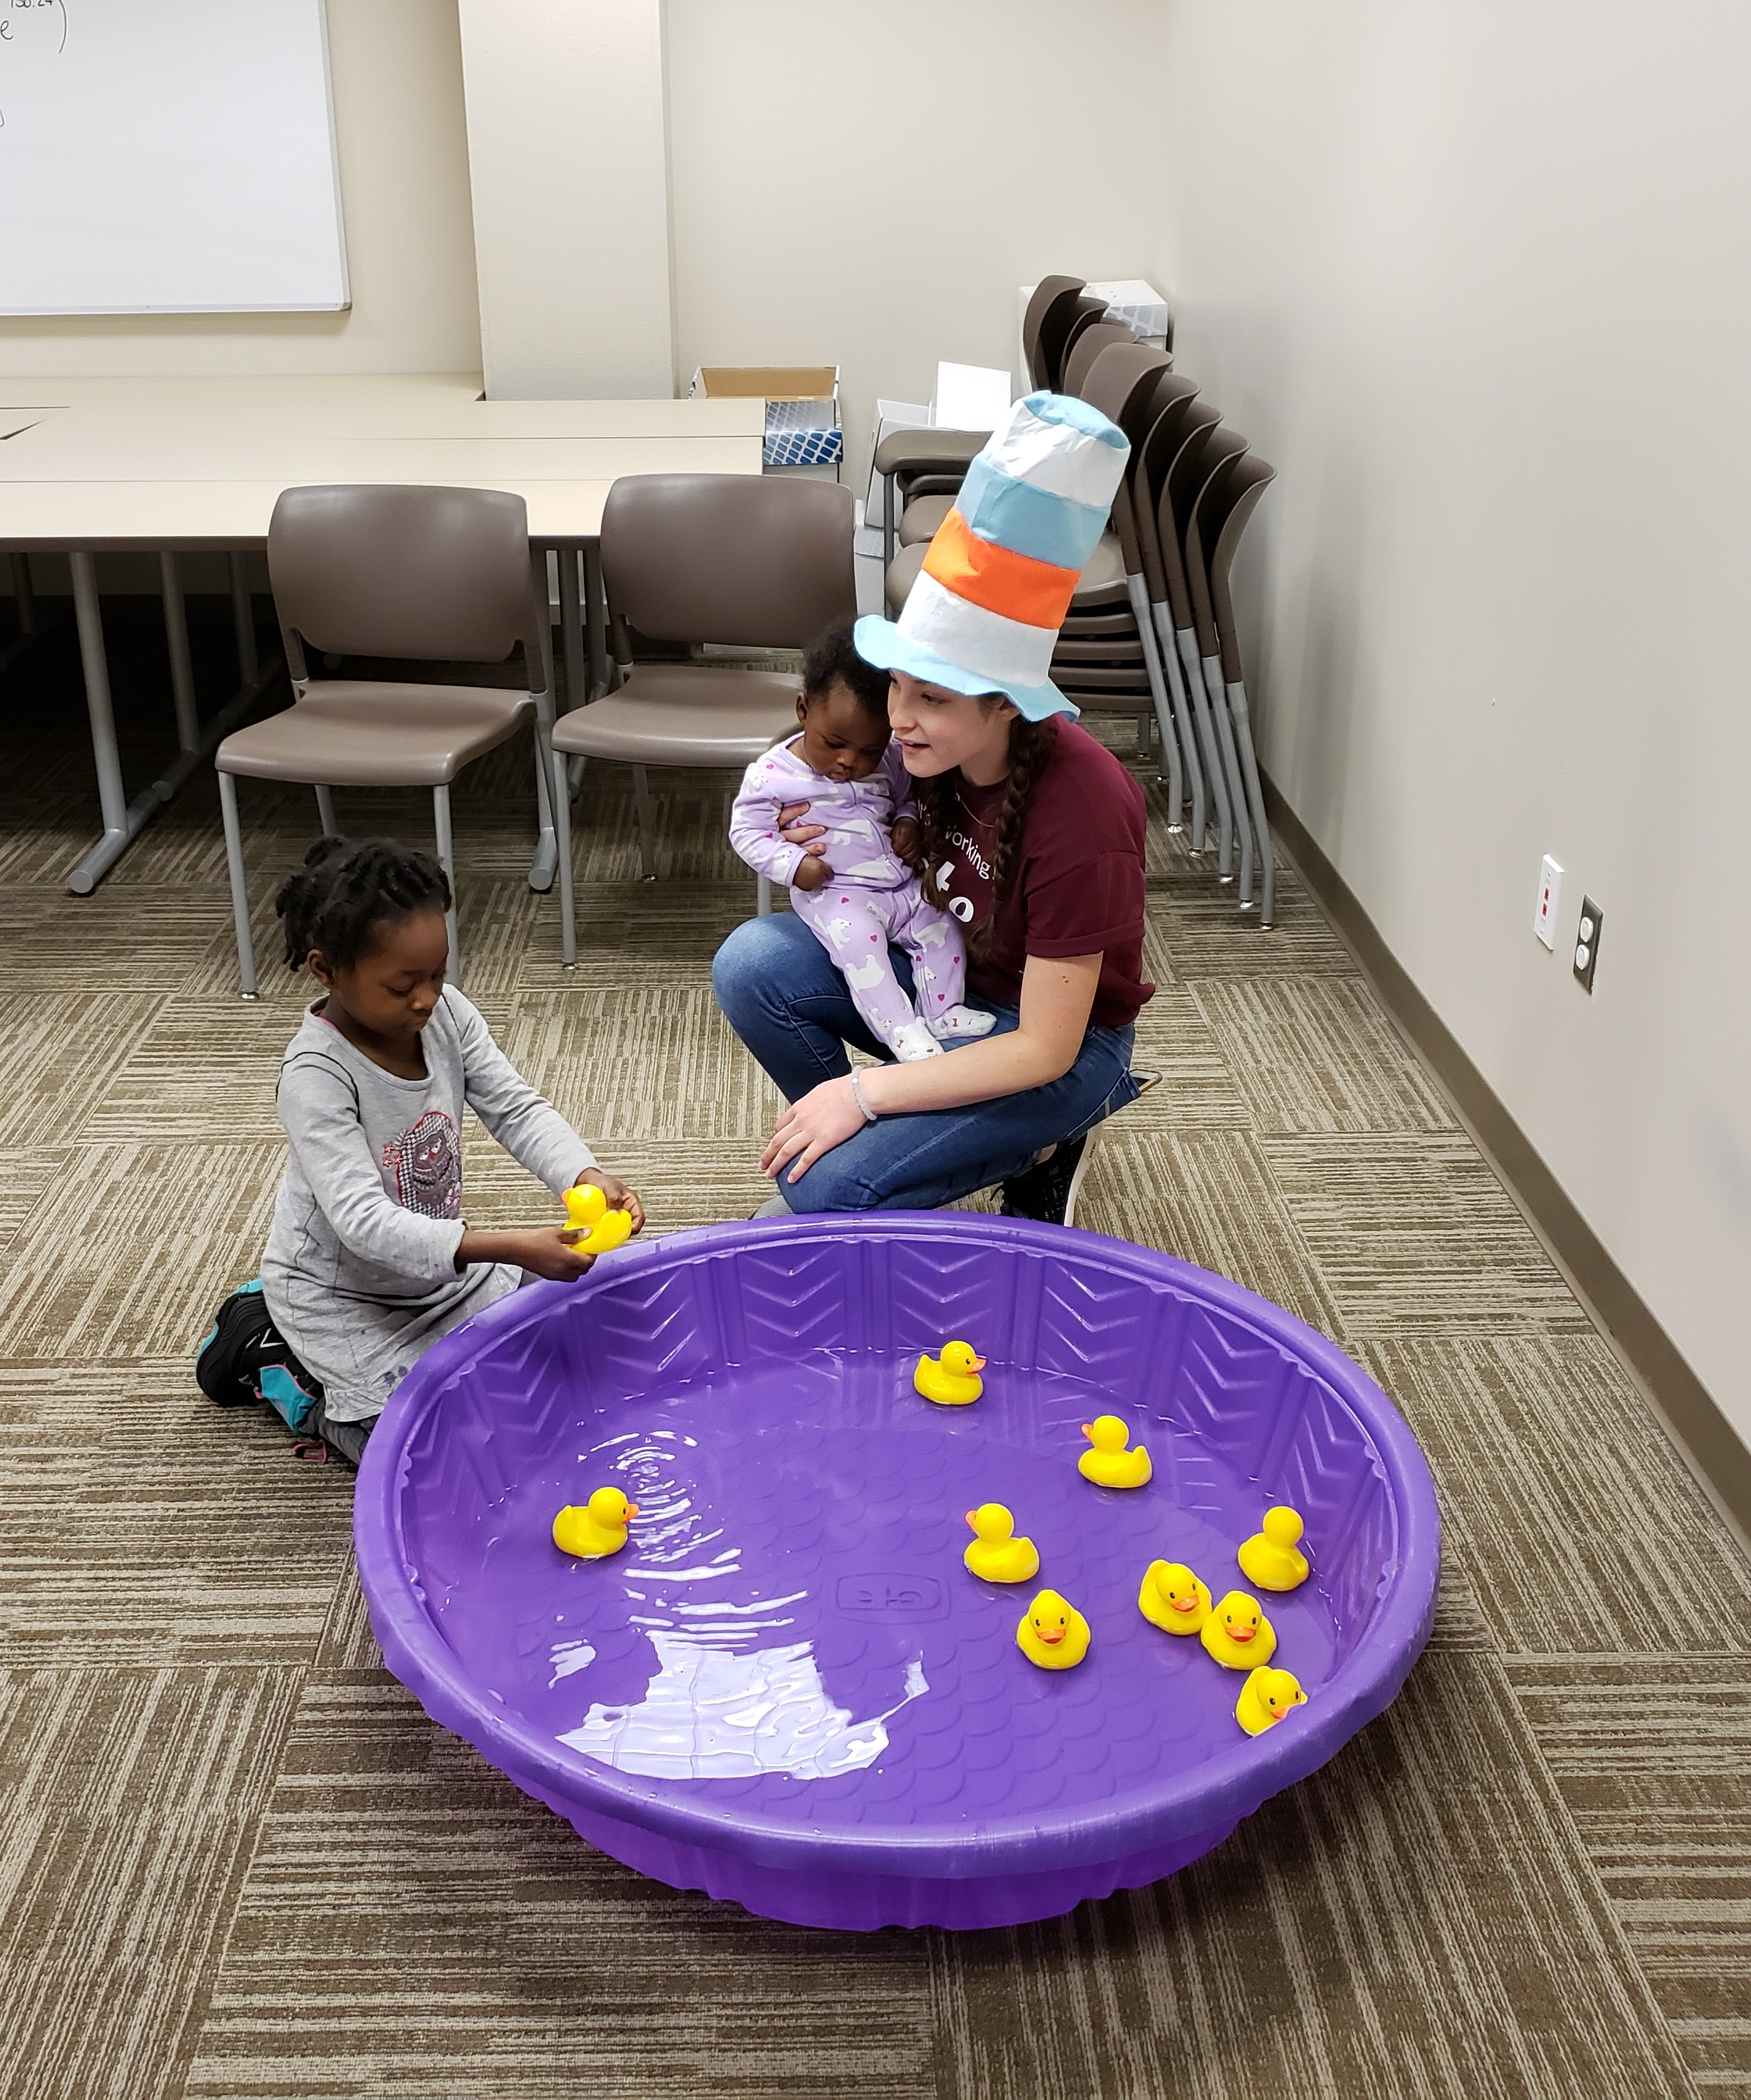 Rubber duckies in small wading pool